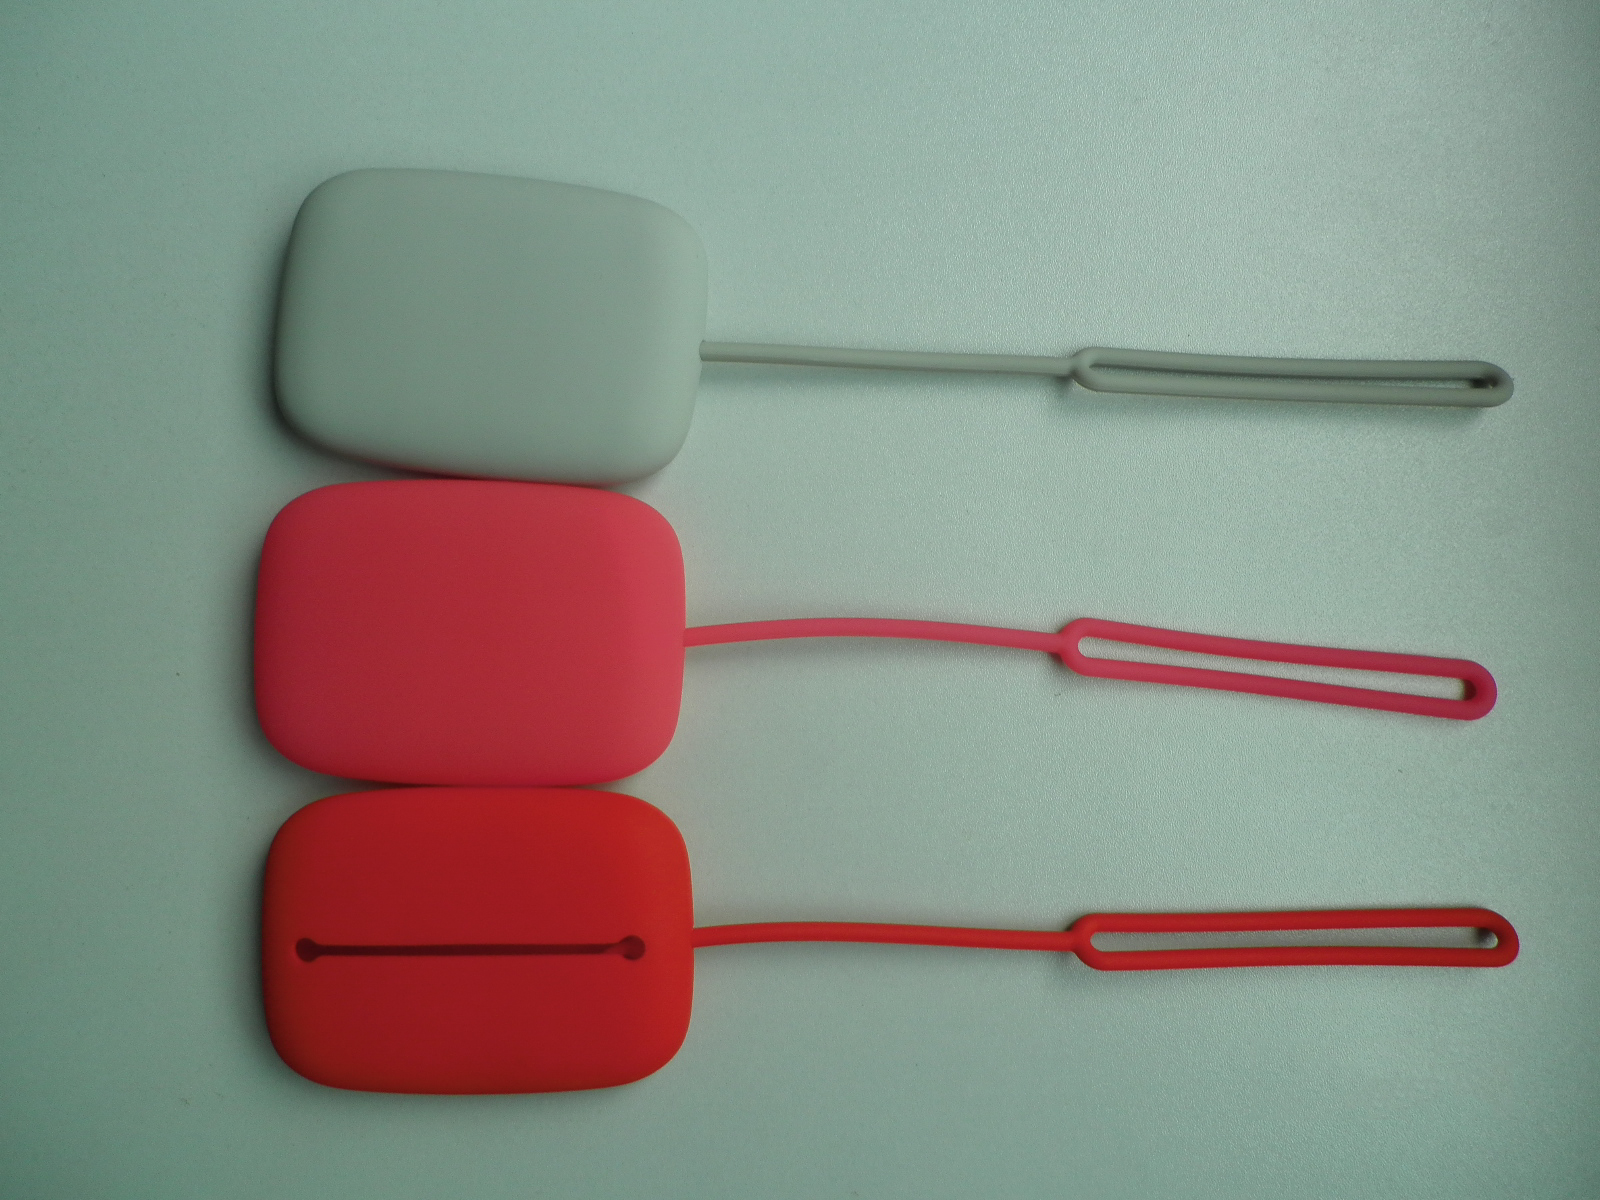 http://www.refinehksilicone.cn/data/images/product/20180418101632_847.JPG